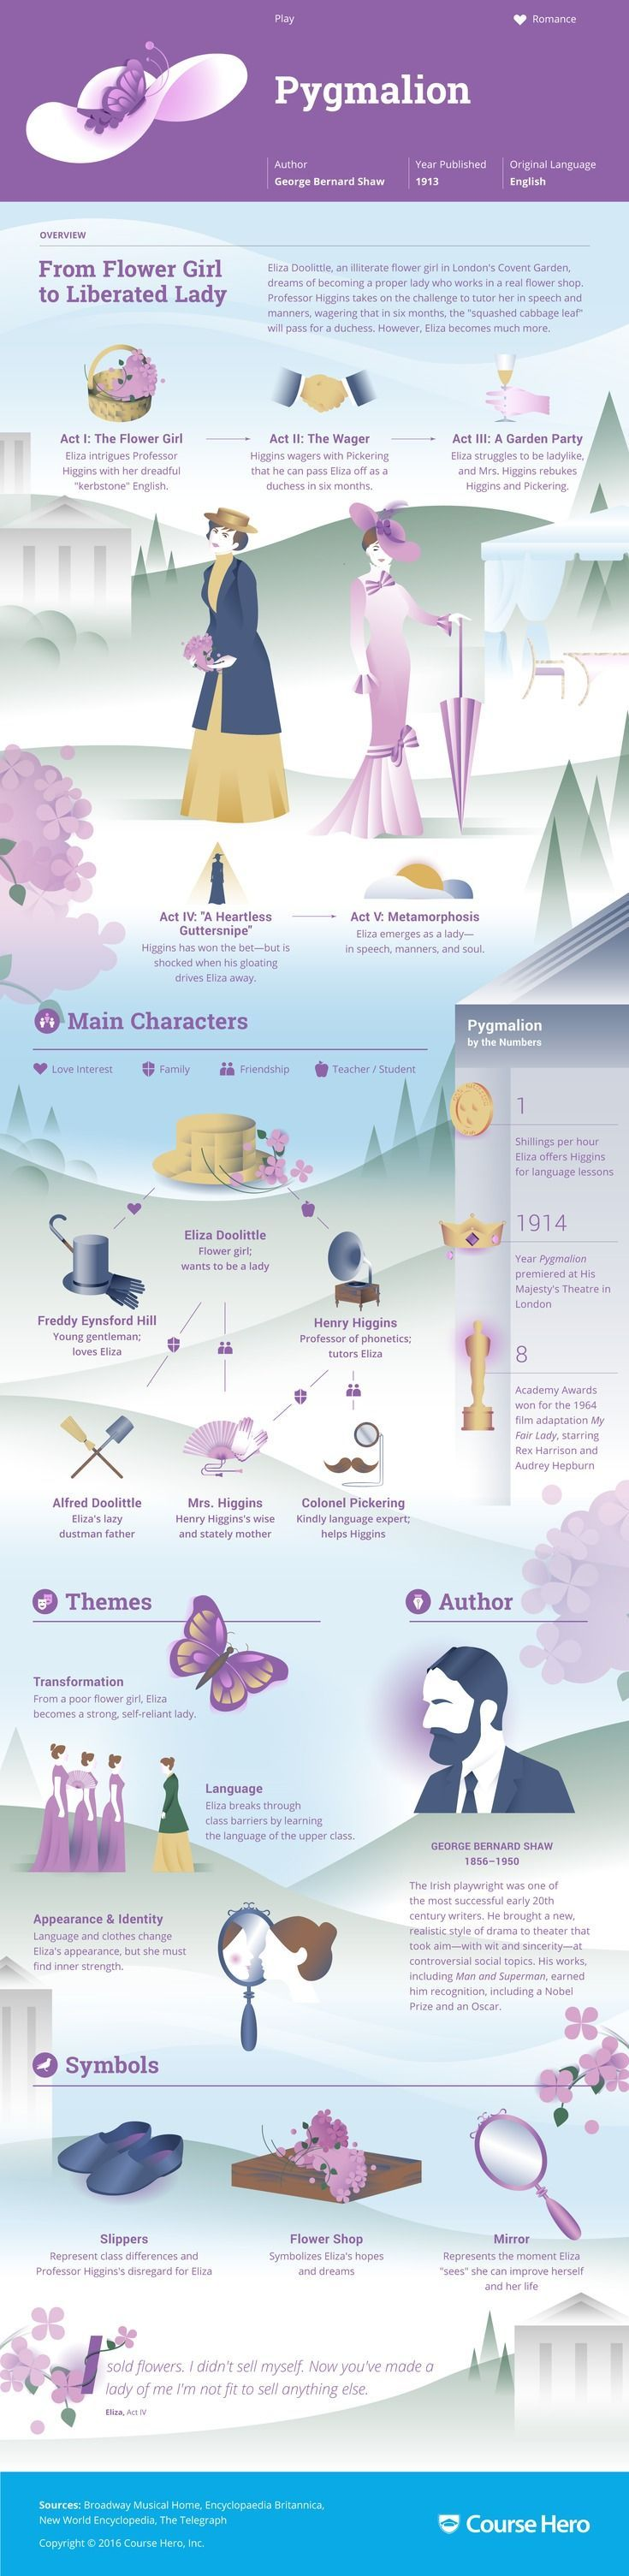 17 best images about writing stories of decision making on this coursehero infographic on pyg on is both visually stunning and